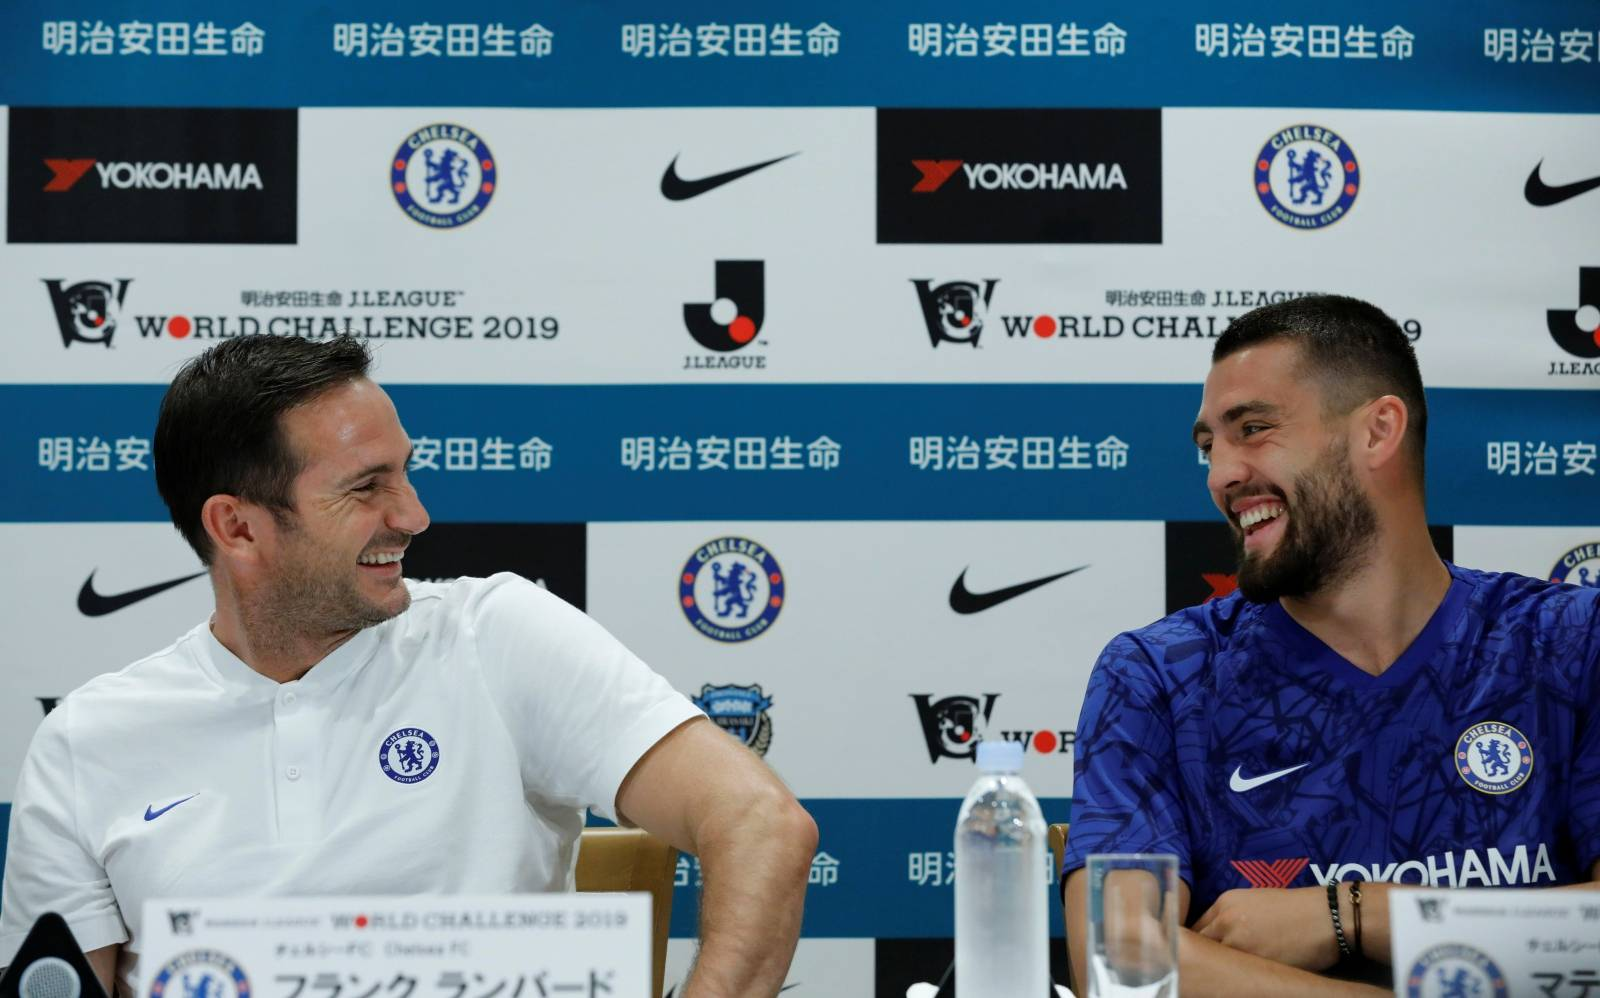 Chelsea manager Frank Lampard laughs with his player Mateo Kovacic during a news conference ahead of their pre-season match against Japan's Kawasaki Frontale in Yokohama